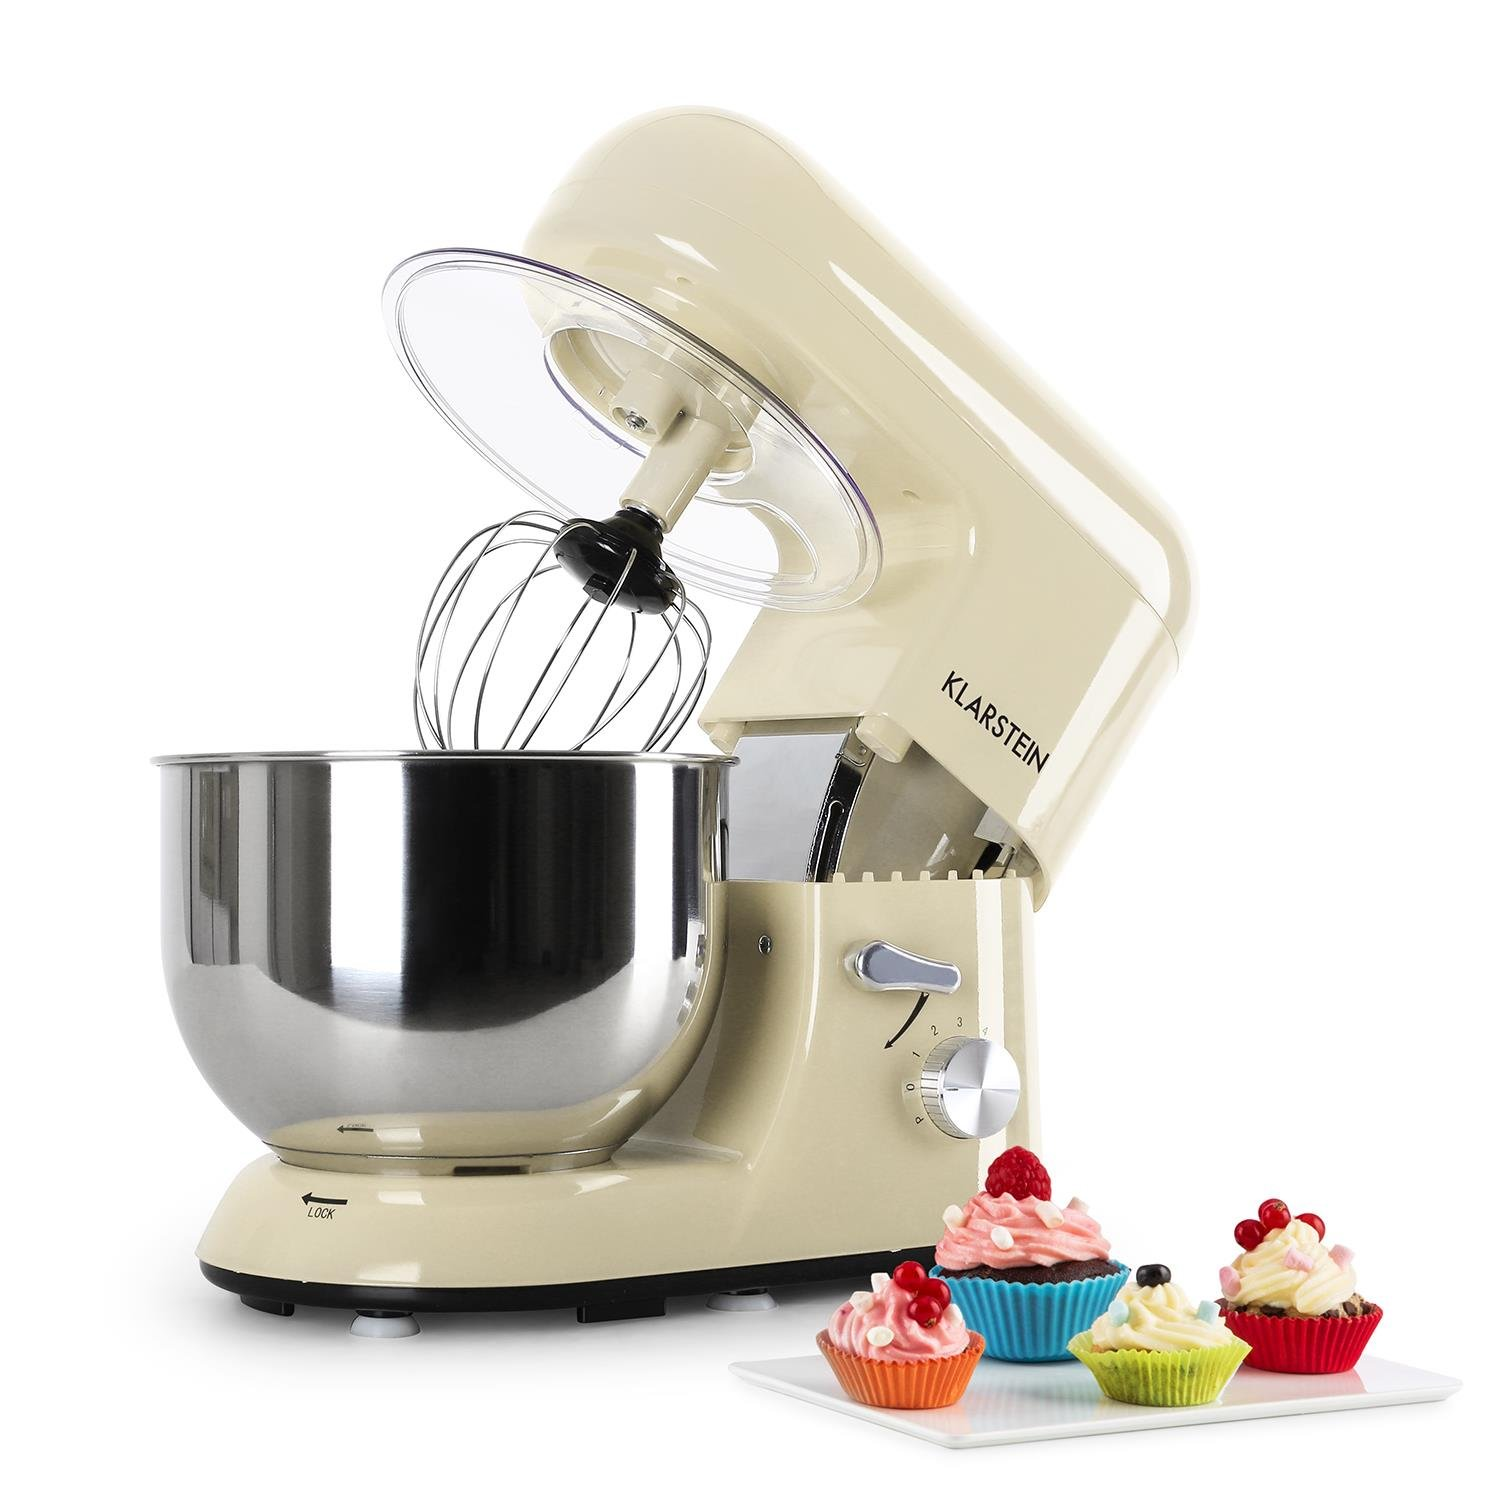 KLARSTEIN Bella Morena • Tilt-Head Stand Mixer • Dough Hook, Flat Beater, Wire Whip • 650 Watts • 1.1 HP • 5.5 qt Stainless Steel Bowl • Planetary Mixing Action • 6 Speeds • Multifunctional • Cream